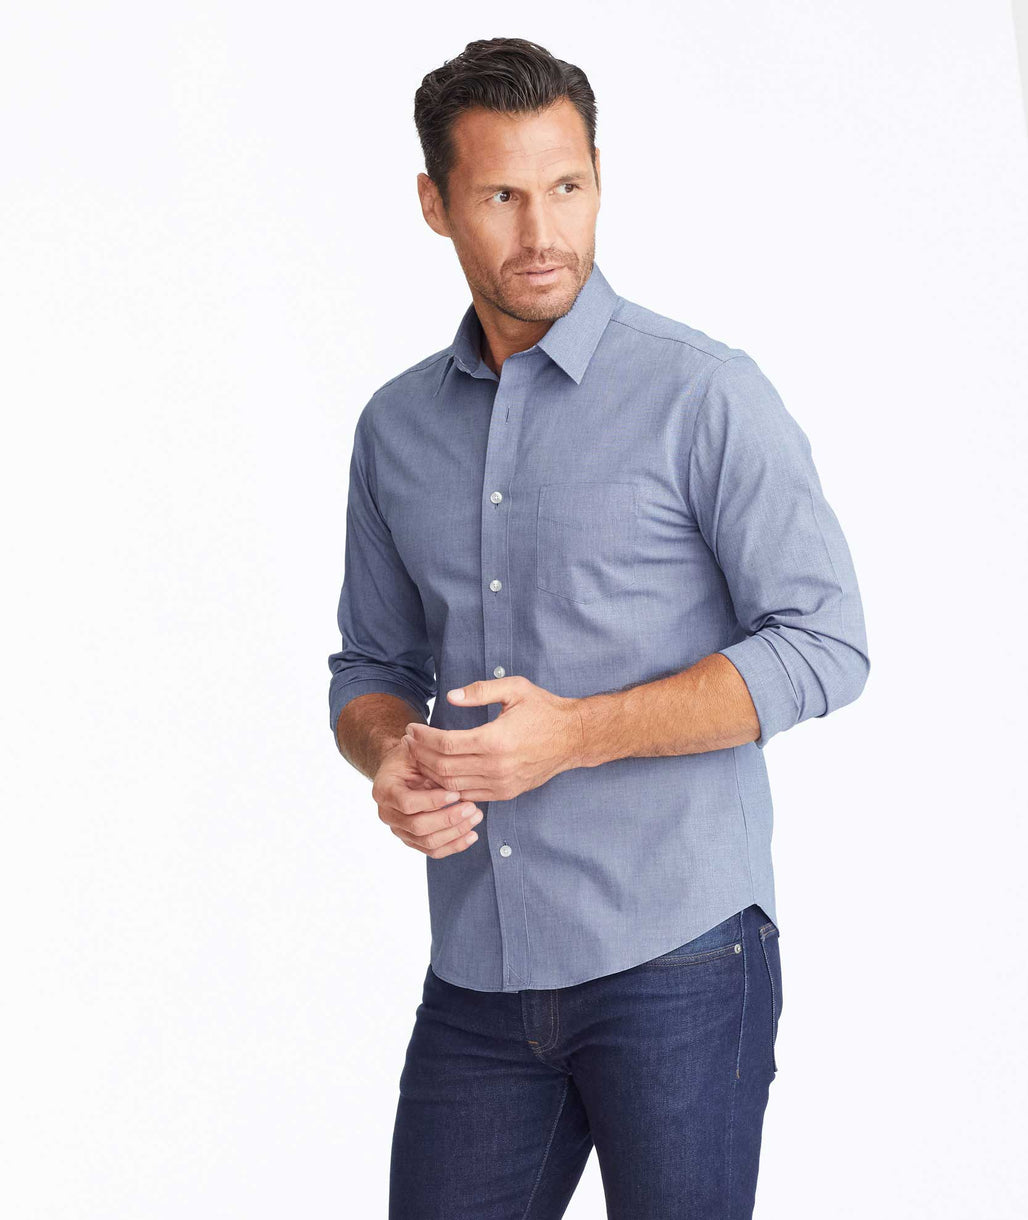 Model wearing a Blue Wrinkle-Free Oakville Shirt